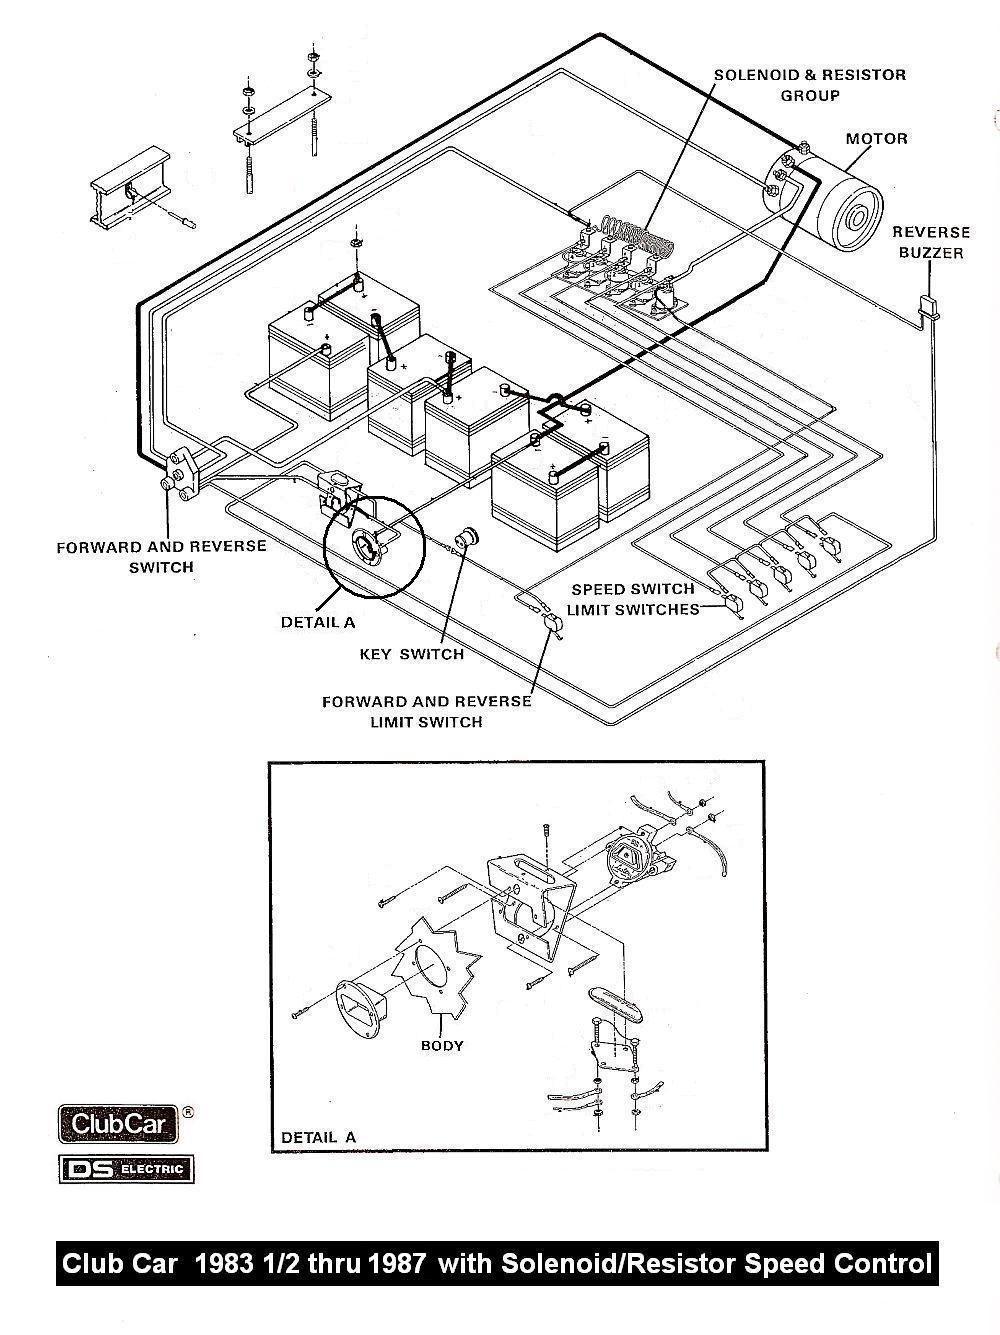 0e8d045370be7682b159825224221faa vintagegolfcartparts com *freezer & crock pot* pinterest club car golf cart 36 volt battery wiring diagram at virtualis.co